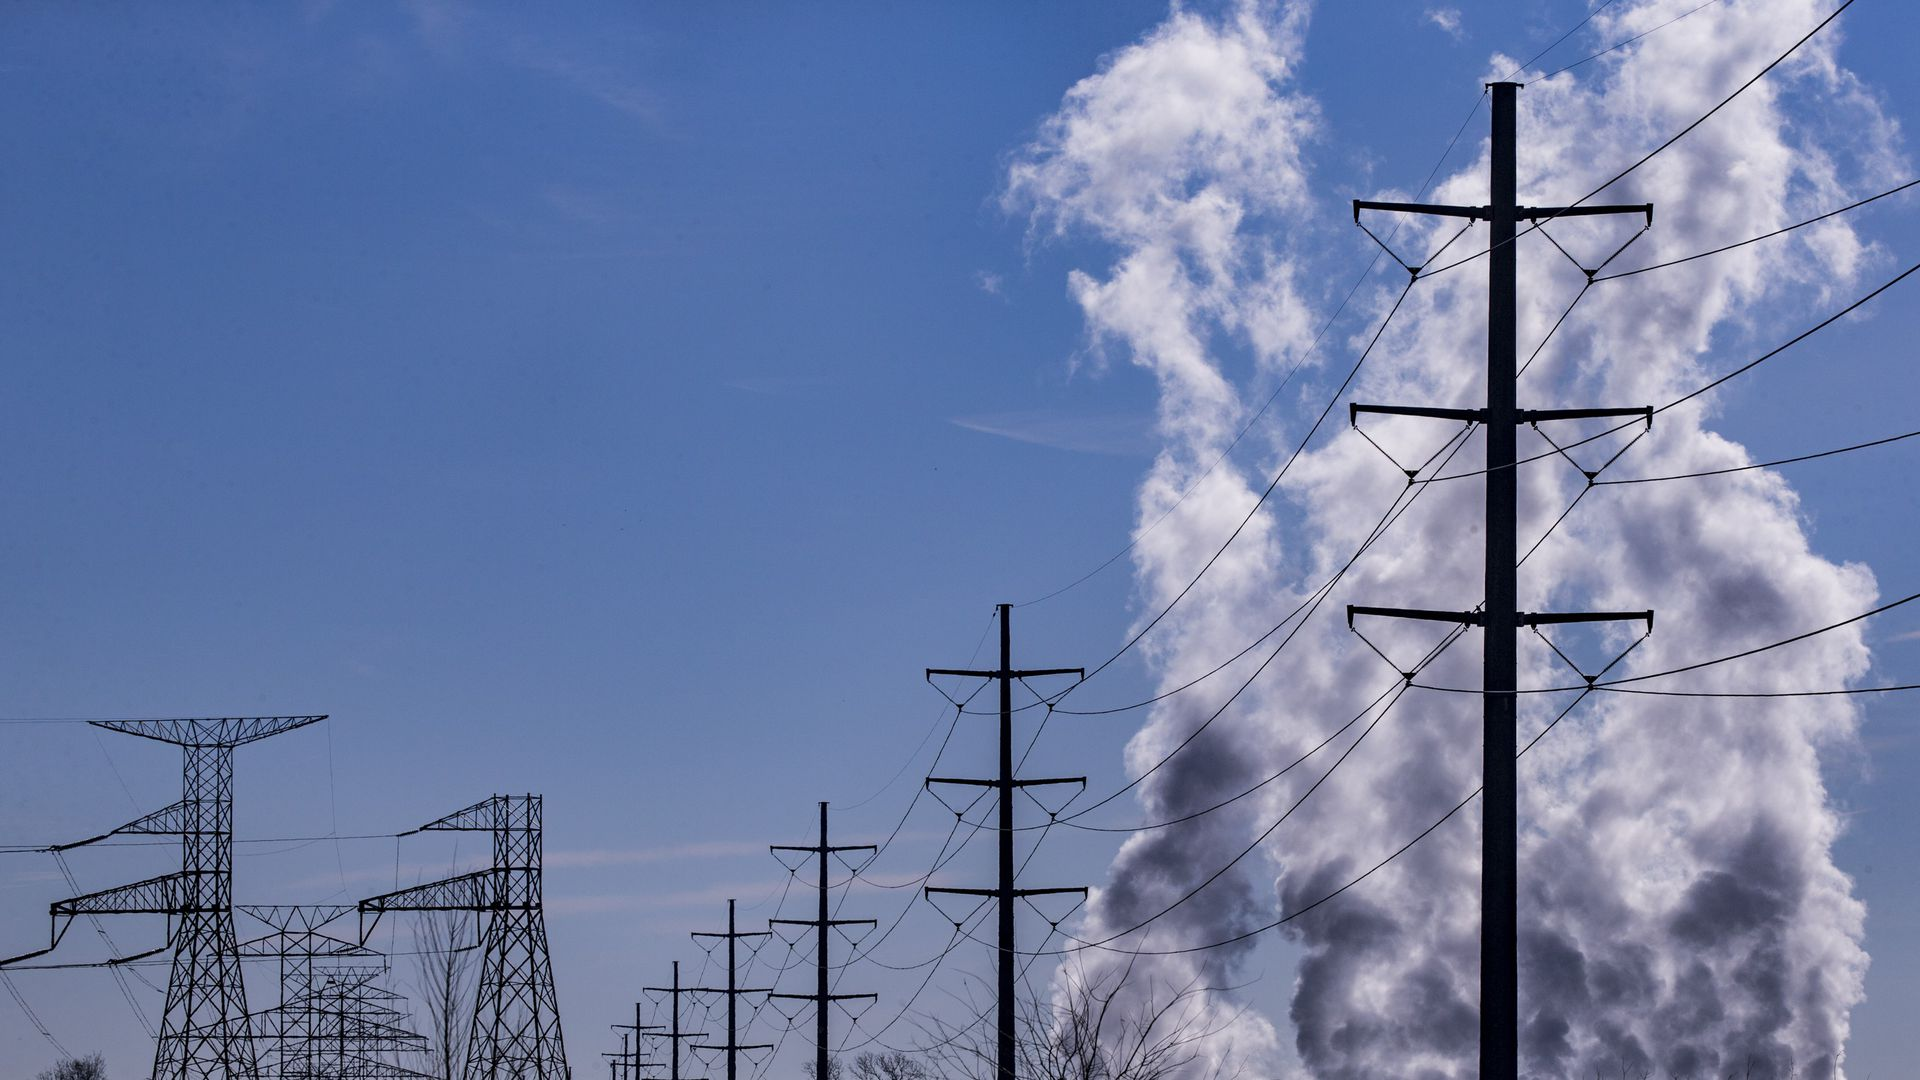 Smoke rises above a natural gas power plant outside of Dallas, Texas, on January 04, 2018.